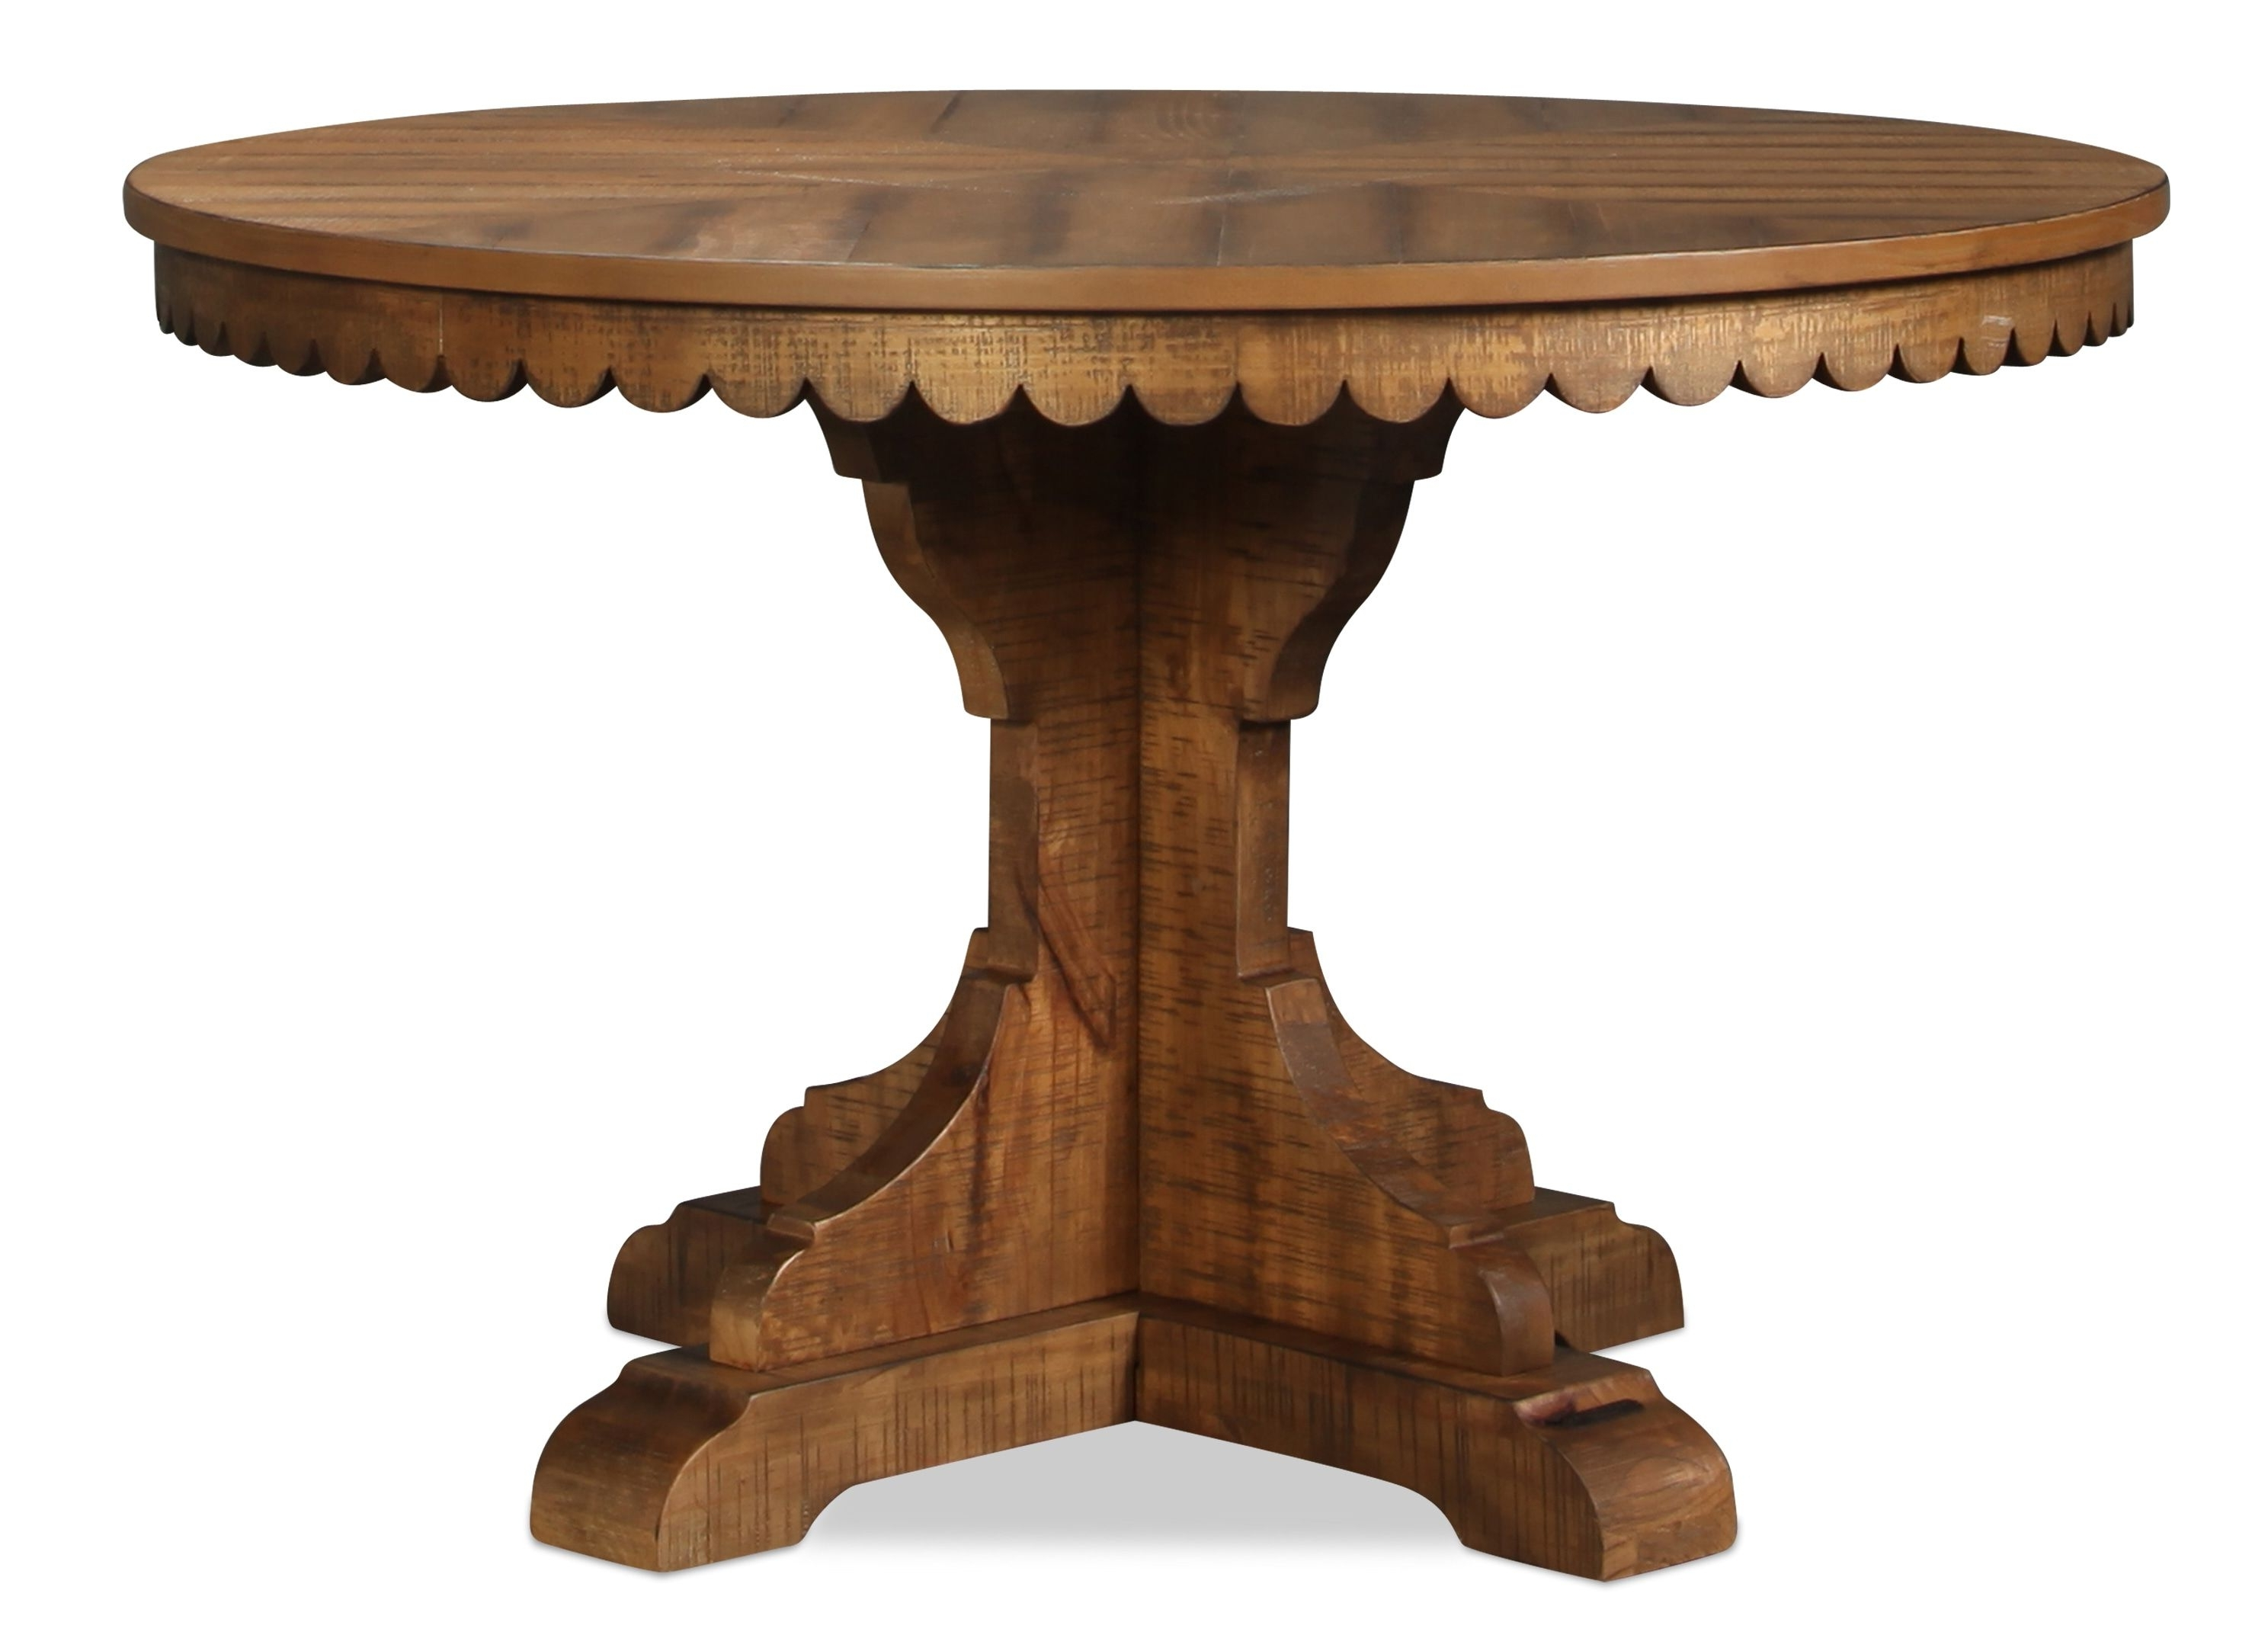 Perfect For Small Space Dining Or As A Breakfast Table, The Magnolia Regarding Current Magnolia Home Top Tier Round Dining Tables (View 22 of 25)